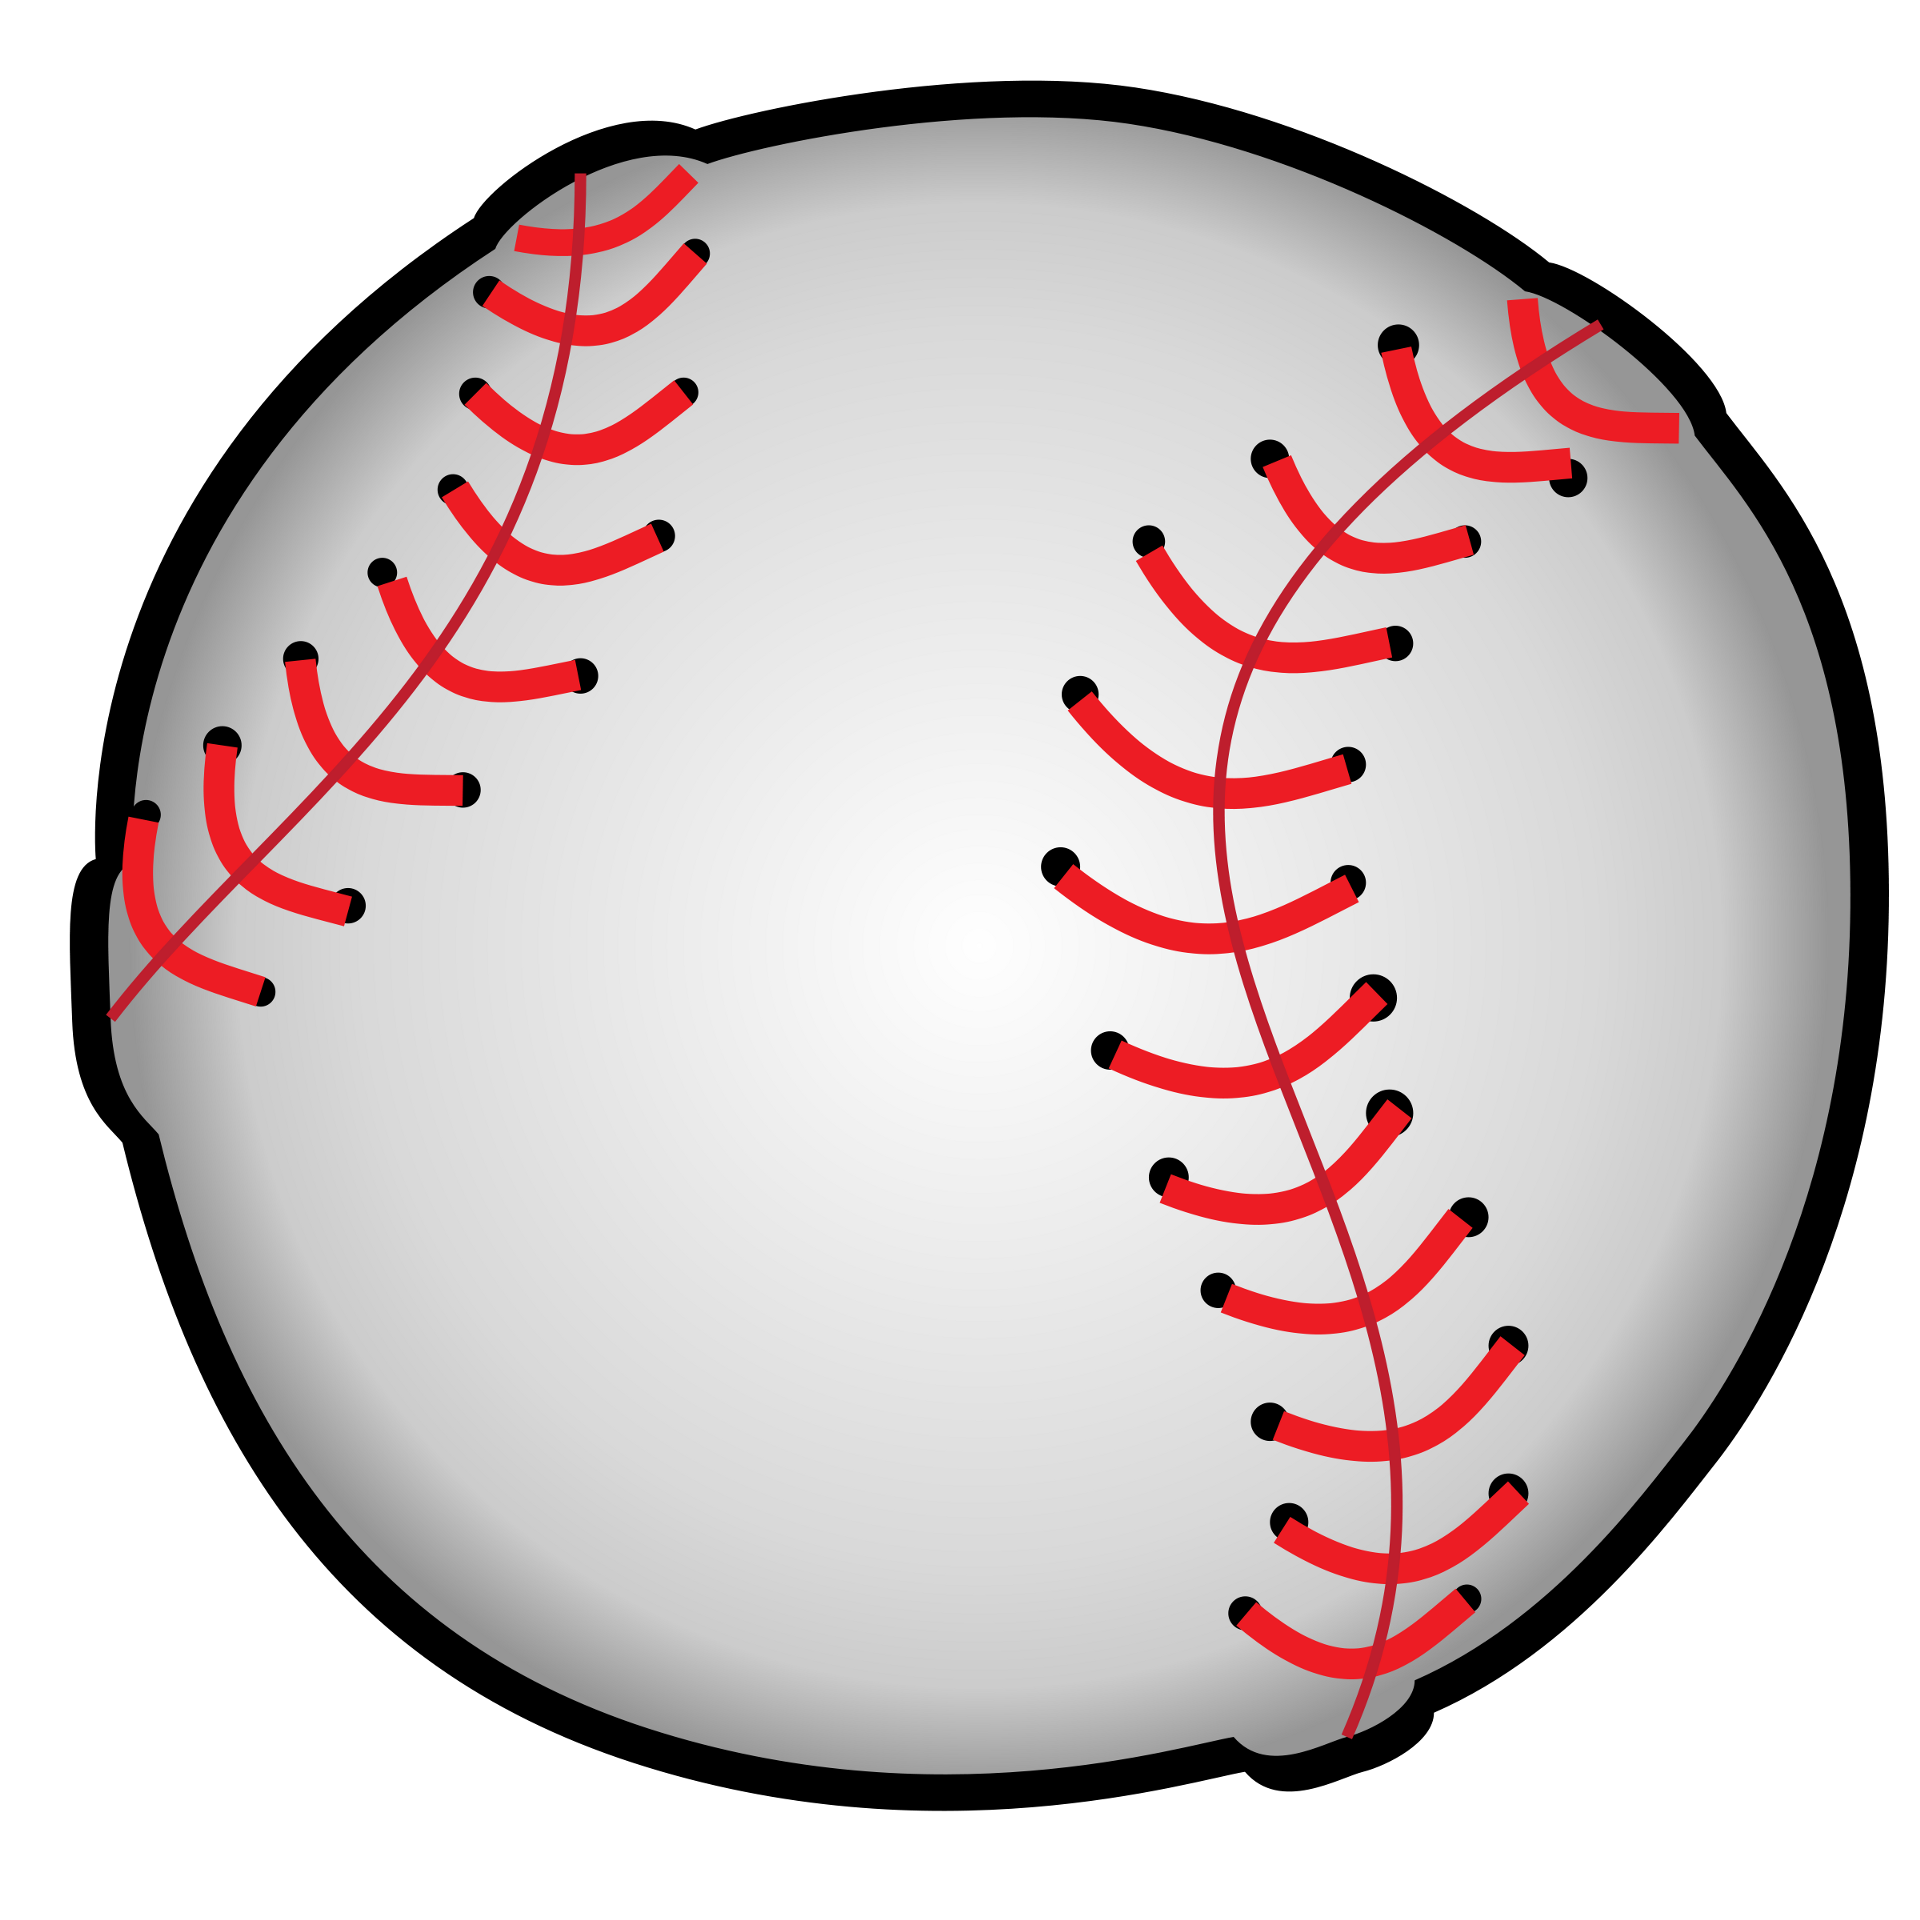 3 up 3 down baseball clipart image black and white stock Moneyball 2: You down with OBP? – The Cauldron image black and white stock